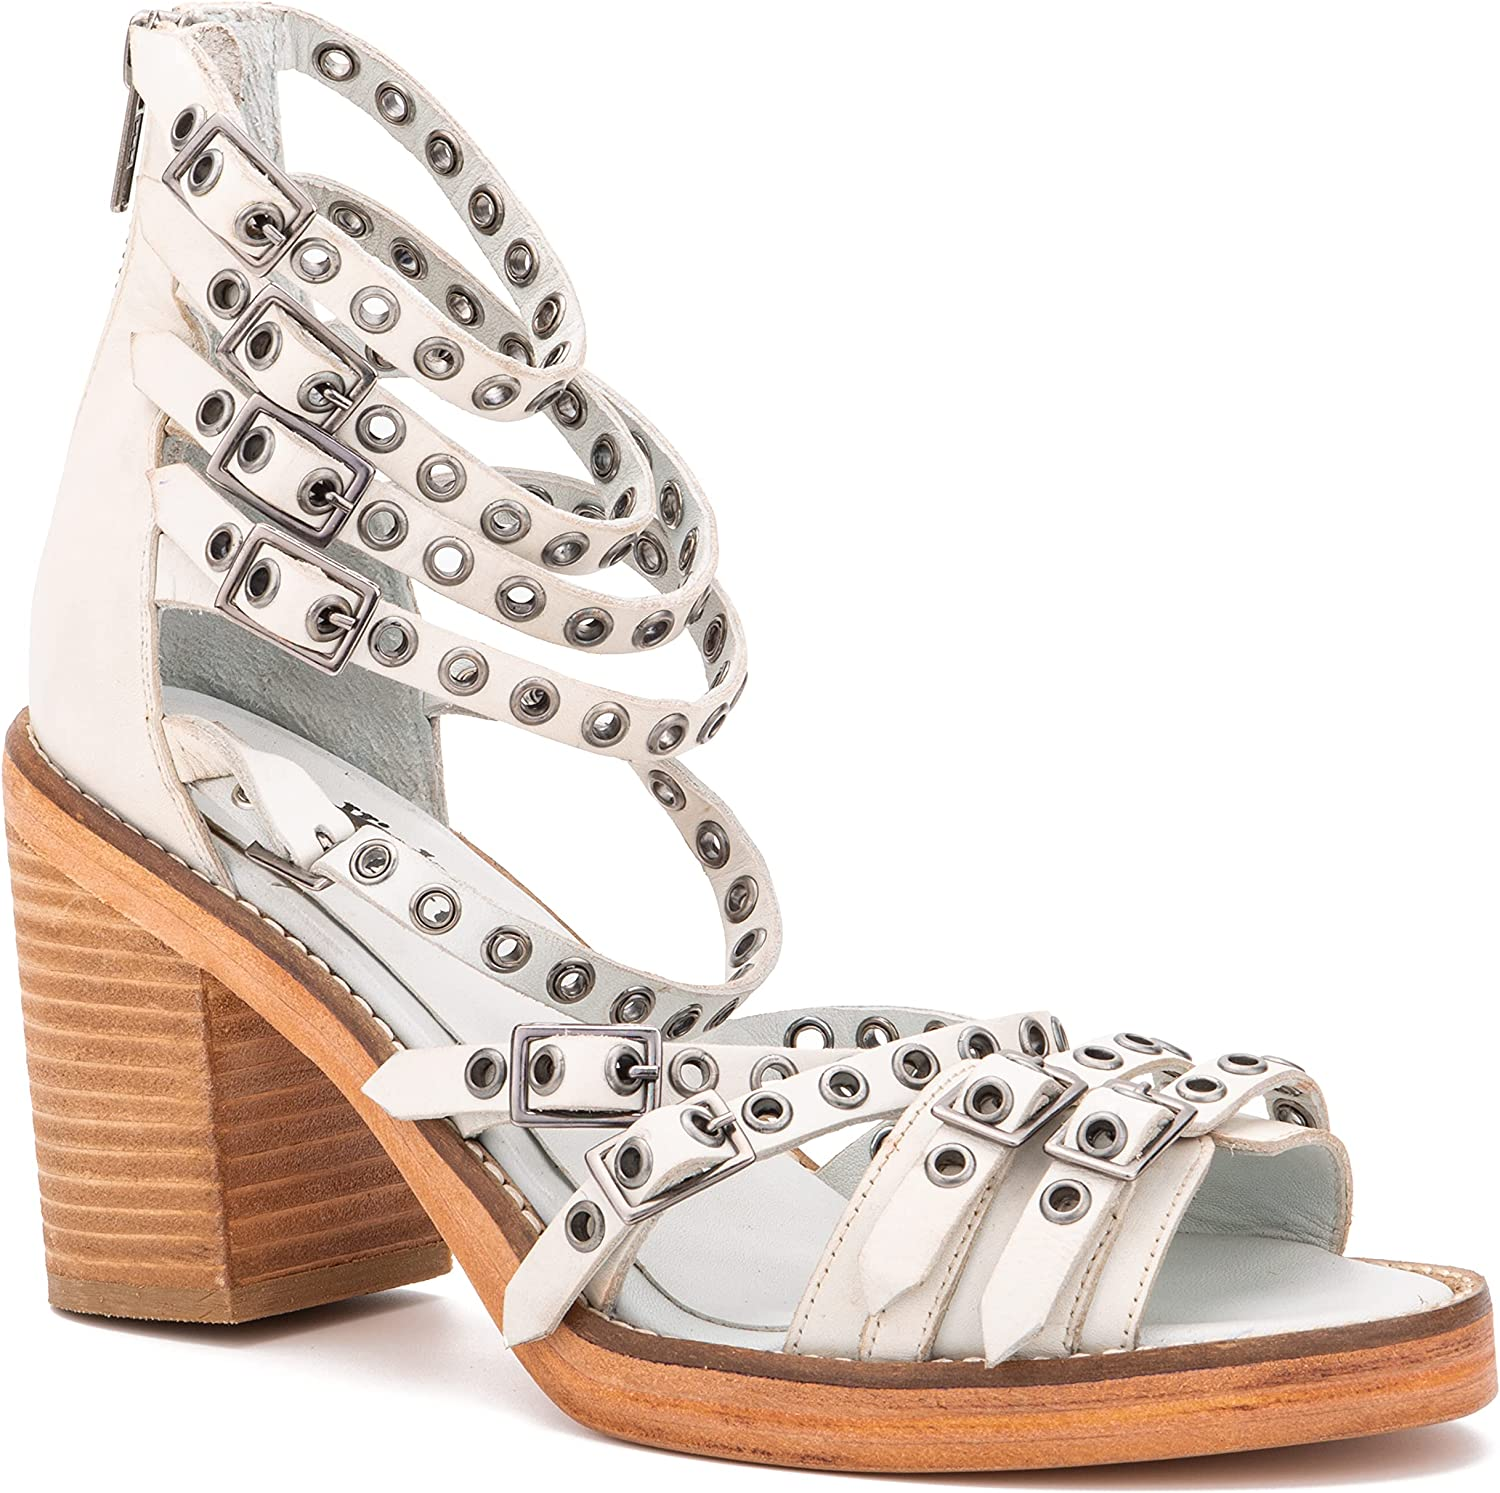 Vintage Foundry Co. Women's Jamina Ankle Strap D'Orsay Strappy Peep Open Toe Heeled Sandal, Leather Outsole